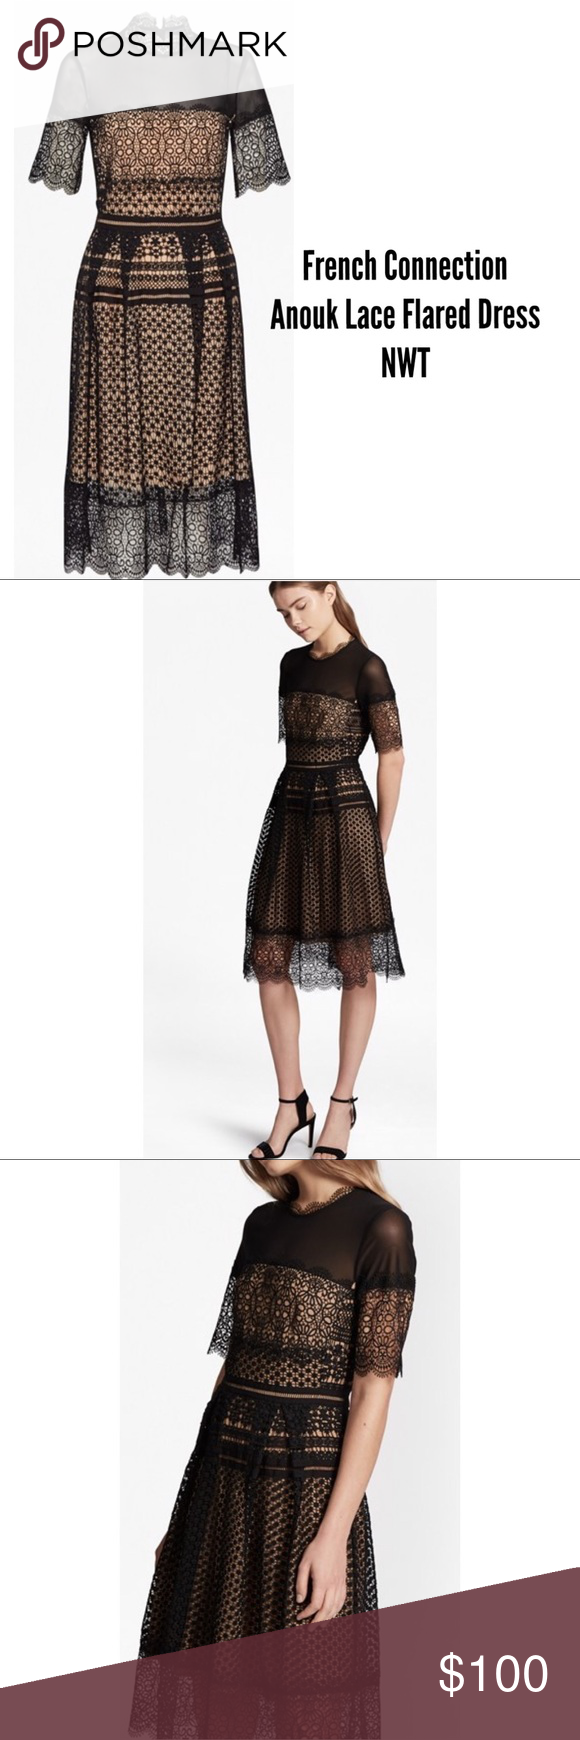 Lace below knee dress  French Connection Anouk Lace Dress NWT NWT